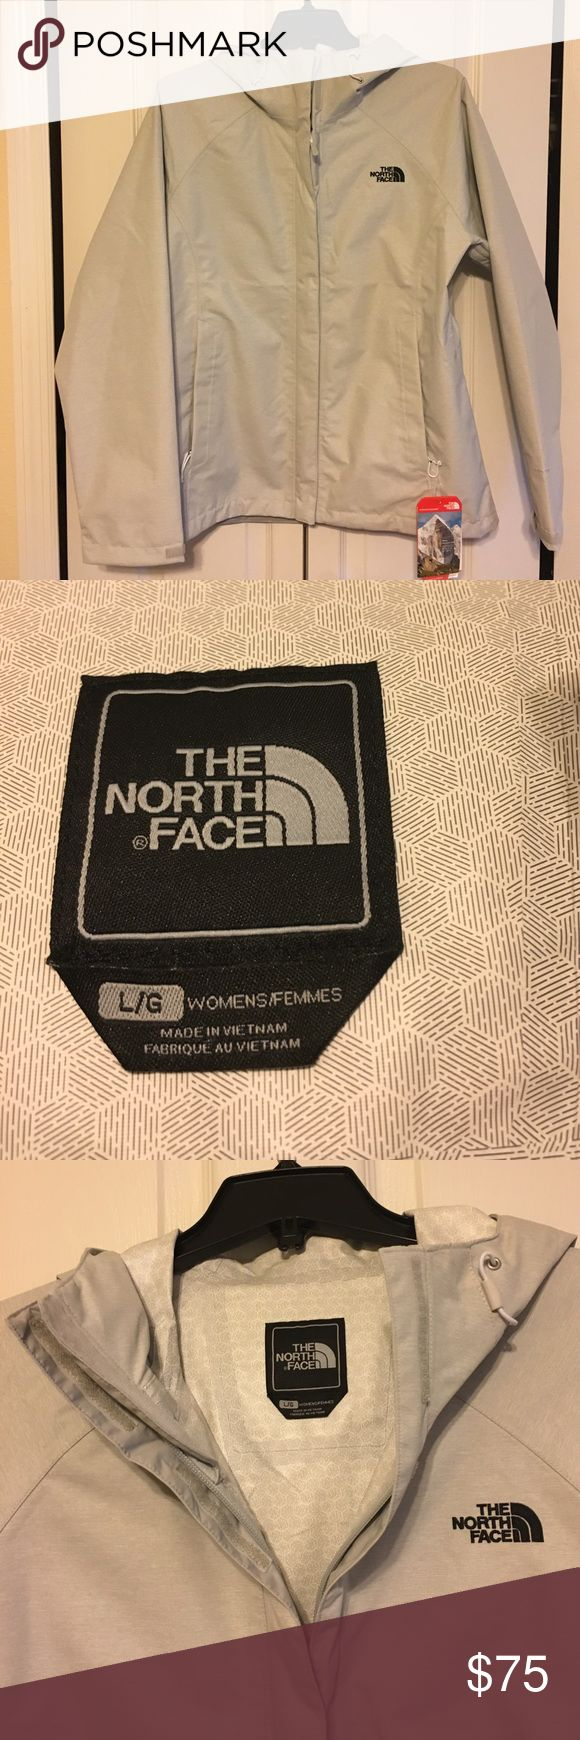 Women's Venture Jacket North Face Size Large NWT North Face Ladies Jacket Size Large The North Face Jackets & Coats